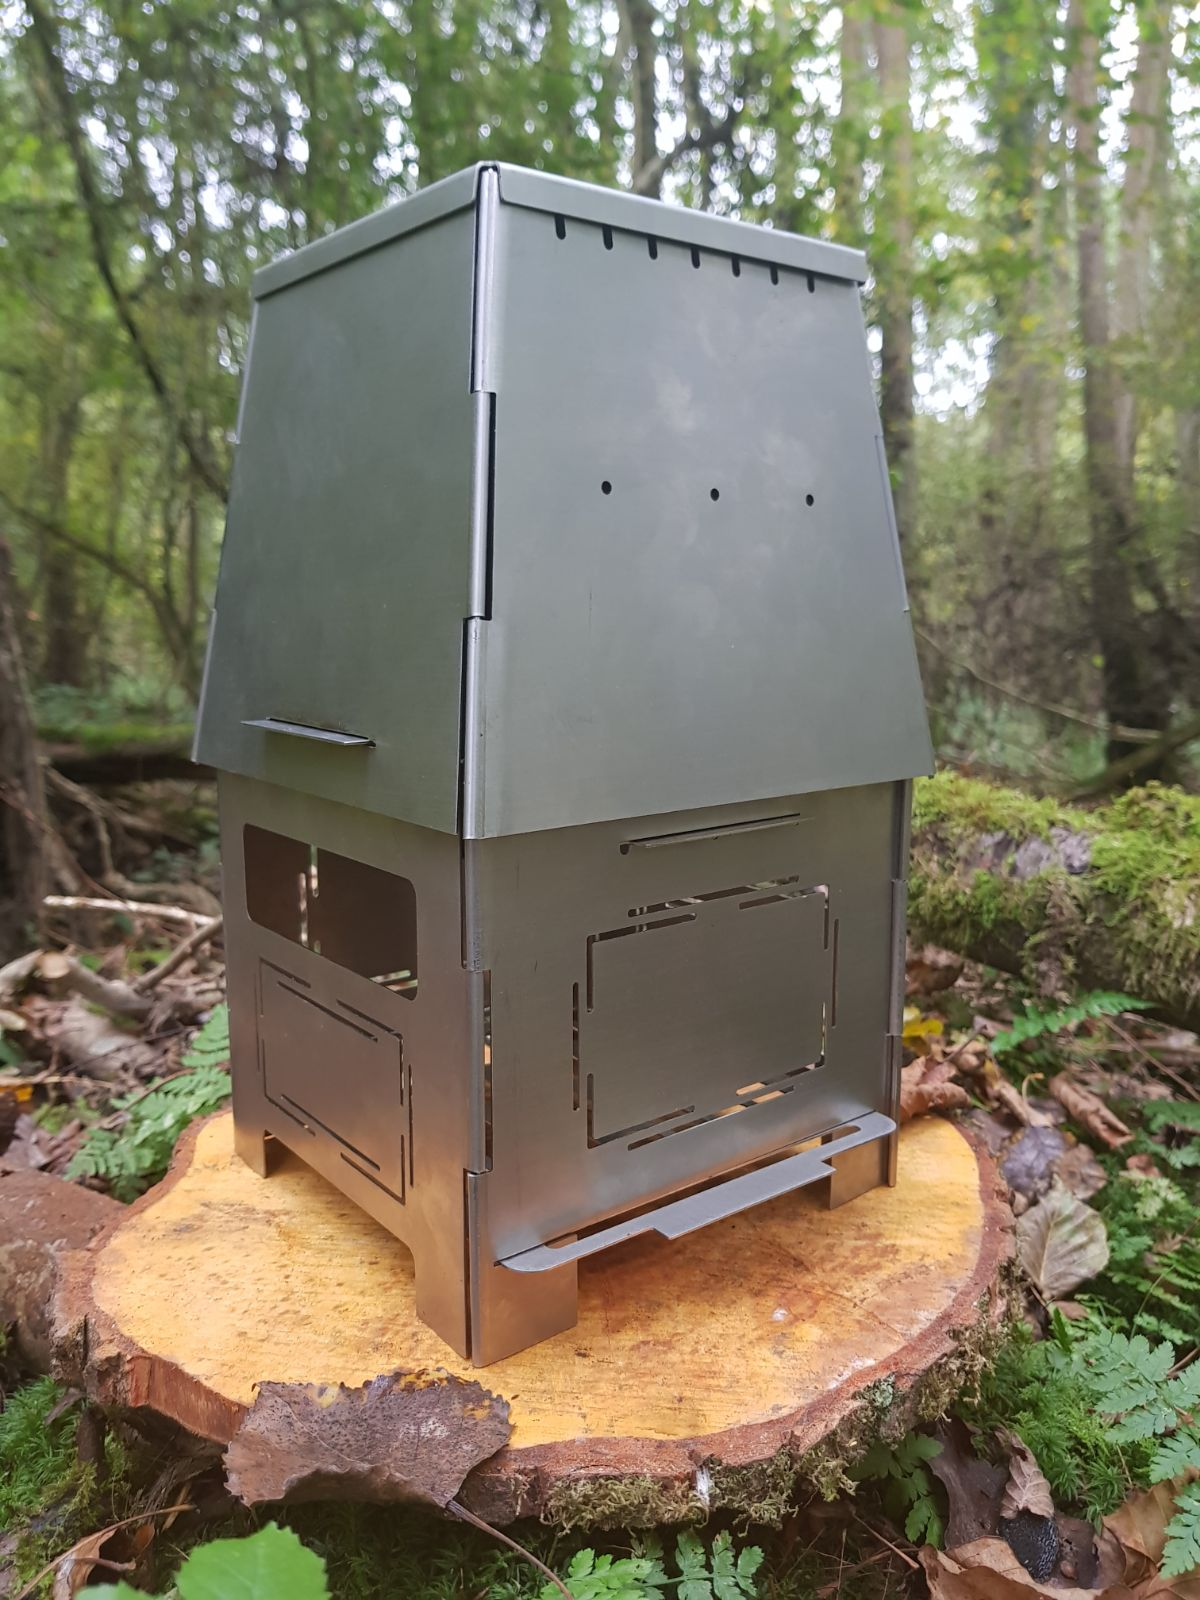 R 246 Keri Camping Stove Amp Smoker Oven Back In Stock 2018